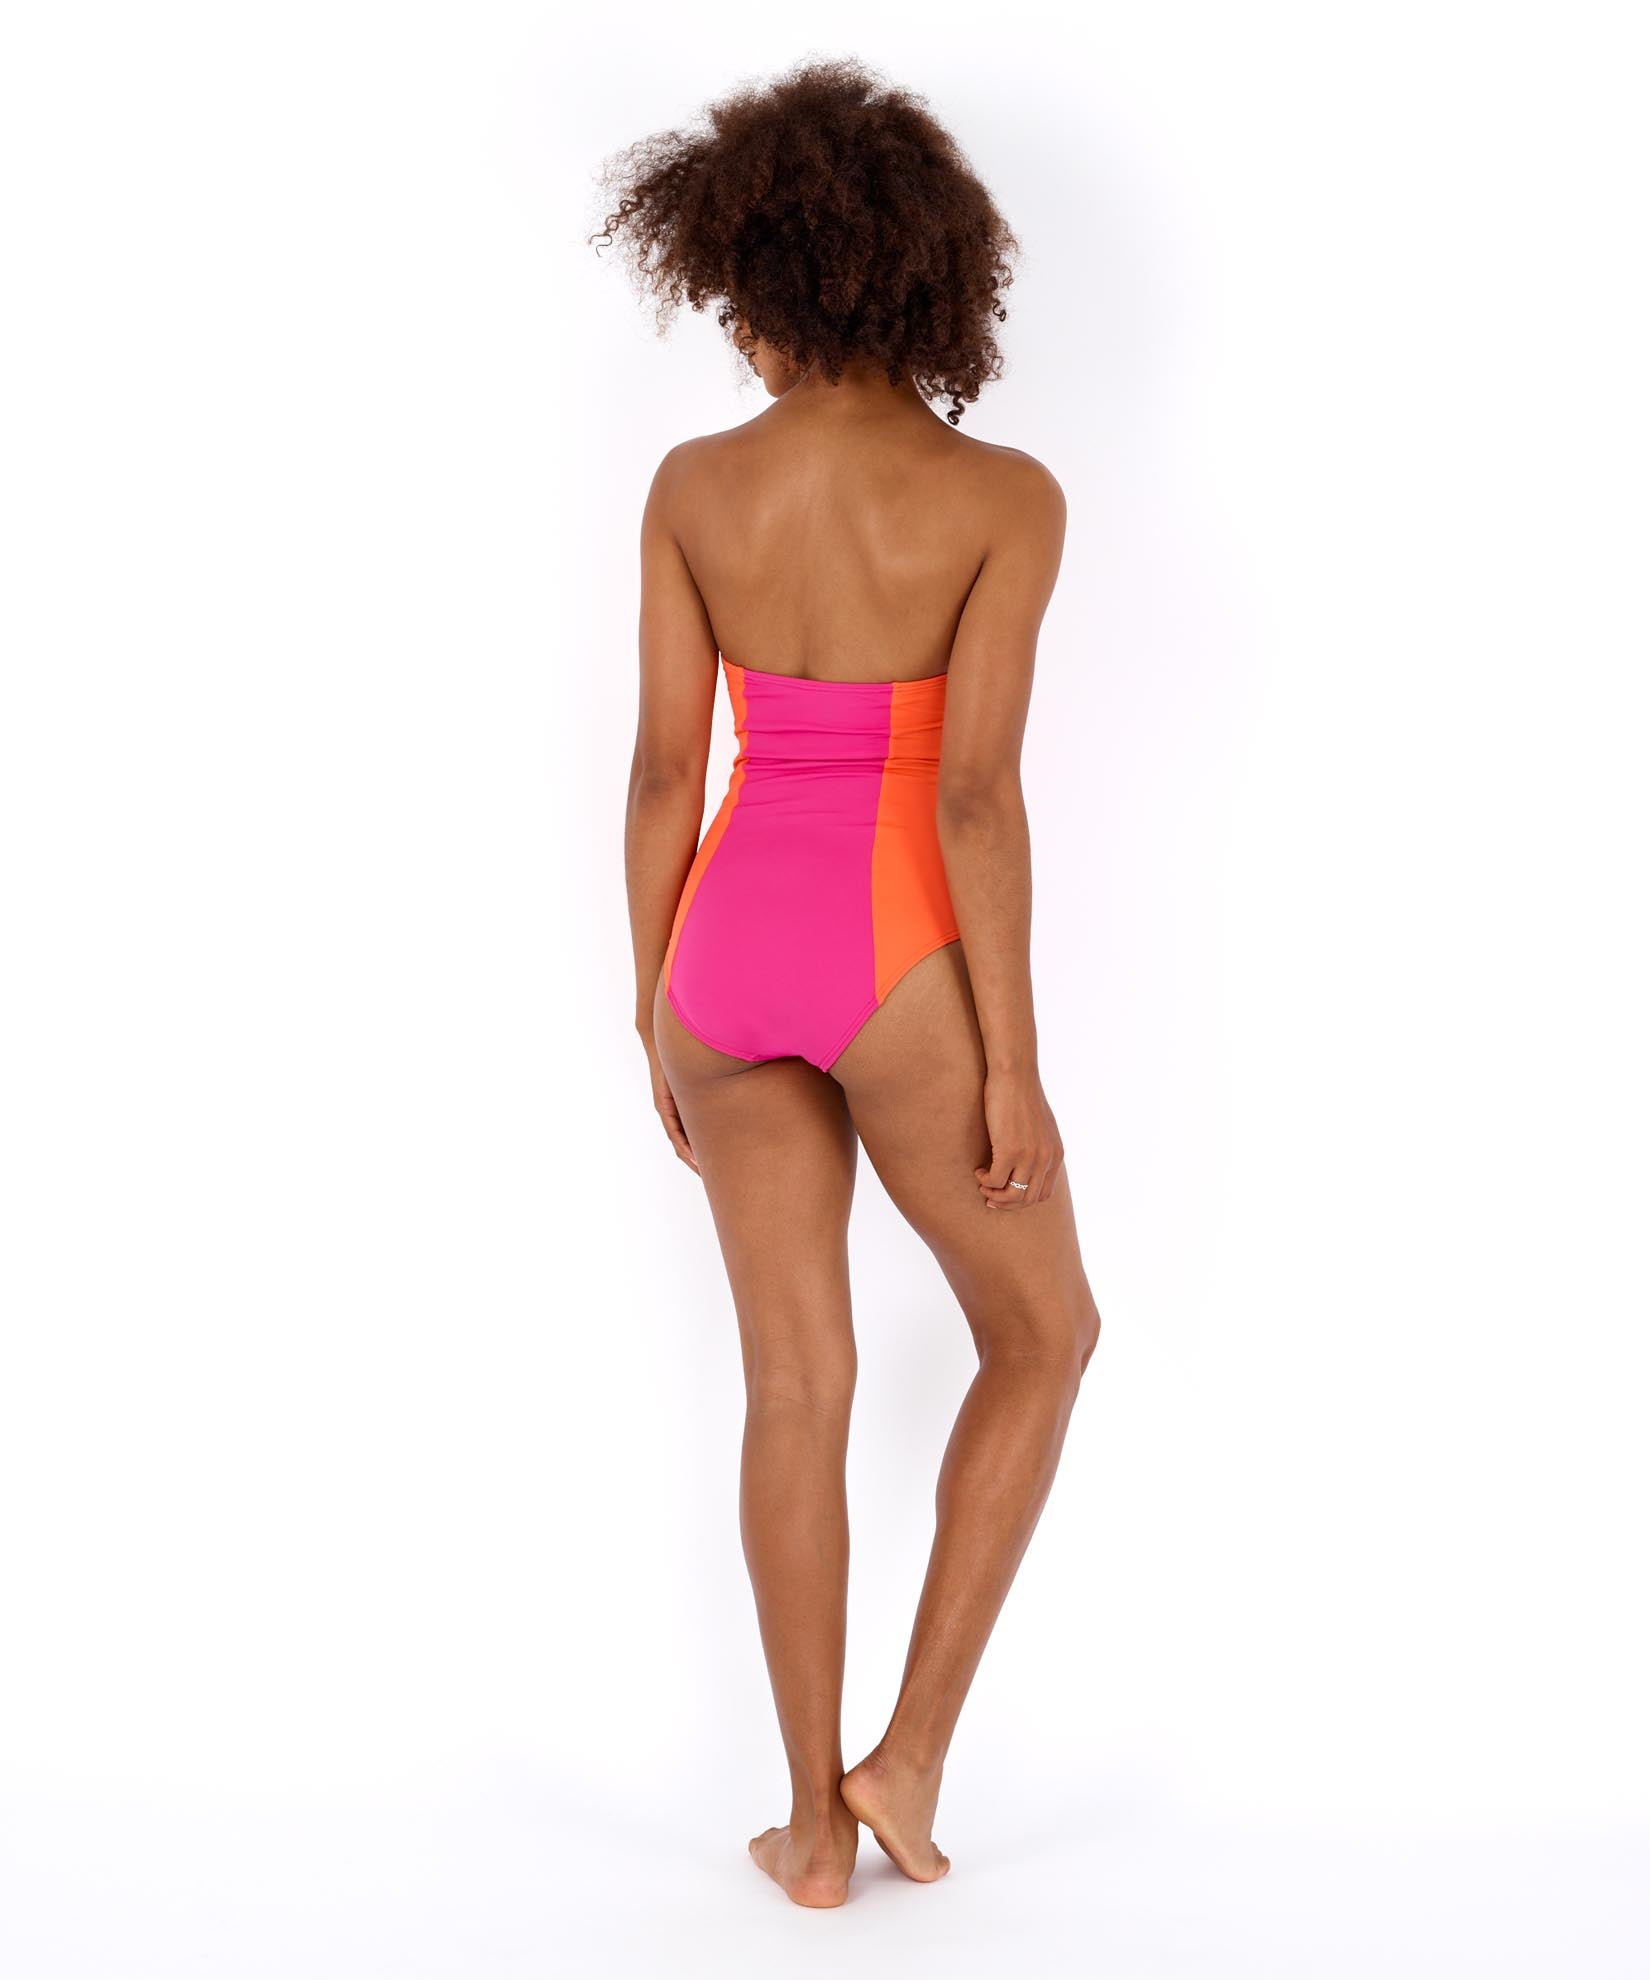 Hibiscus Pink - Colorblock Underwire One Piece